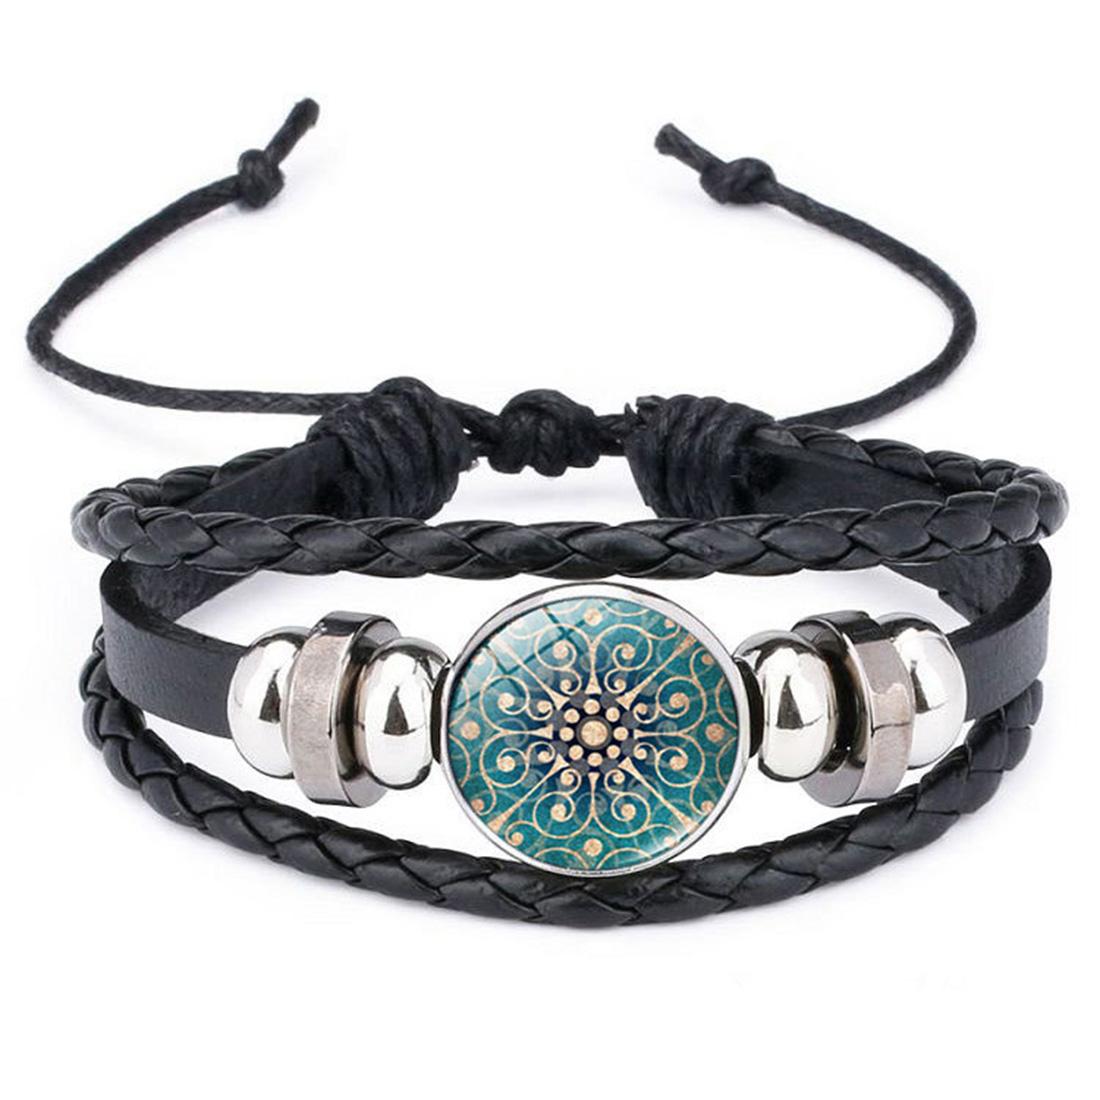 Fashion Datura Pictures Glass Cabochon Leather Braided Bracelet for Boy Girl Weave Multi-layer Punk Style Bracelet